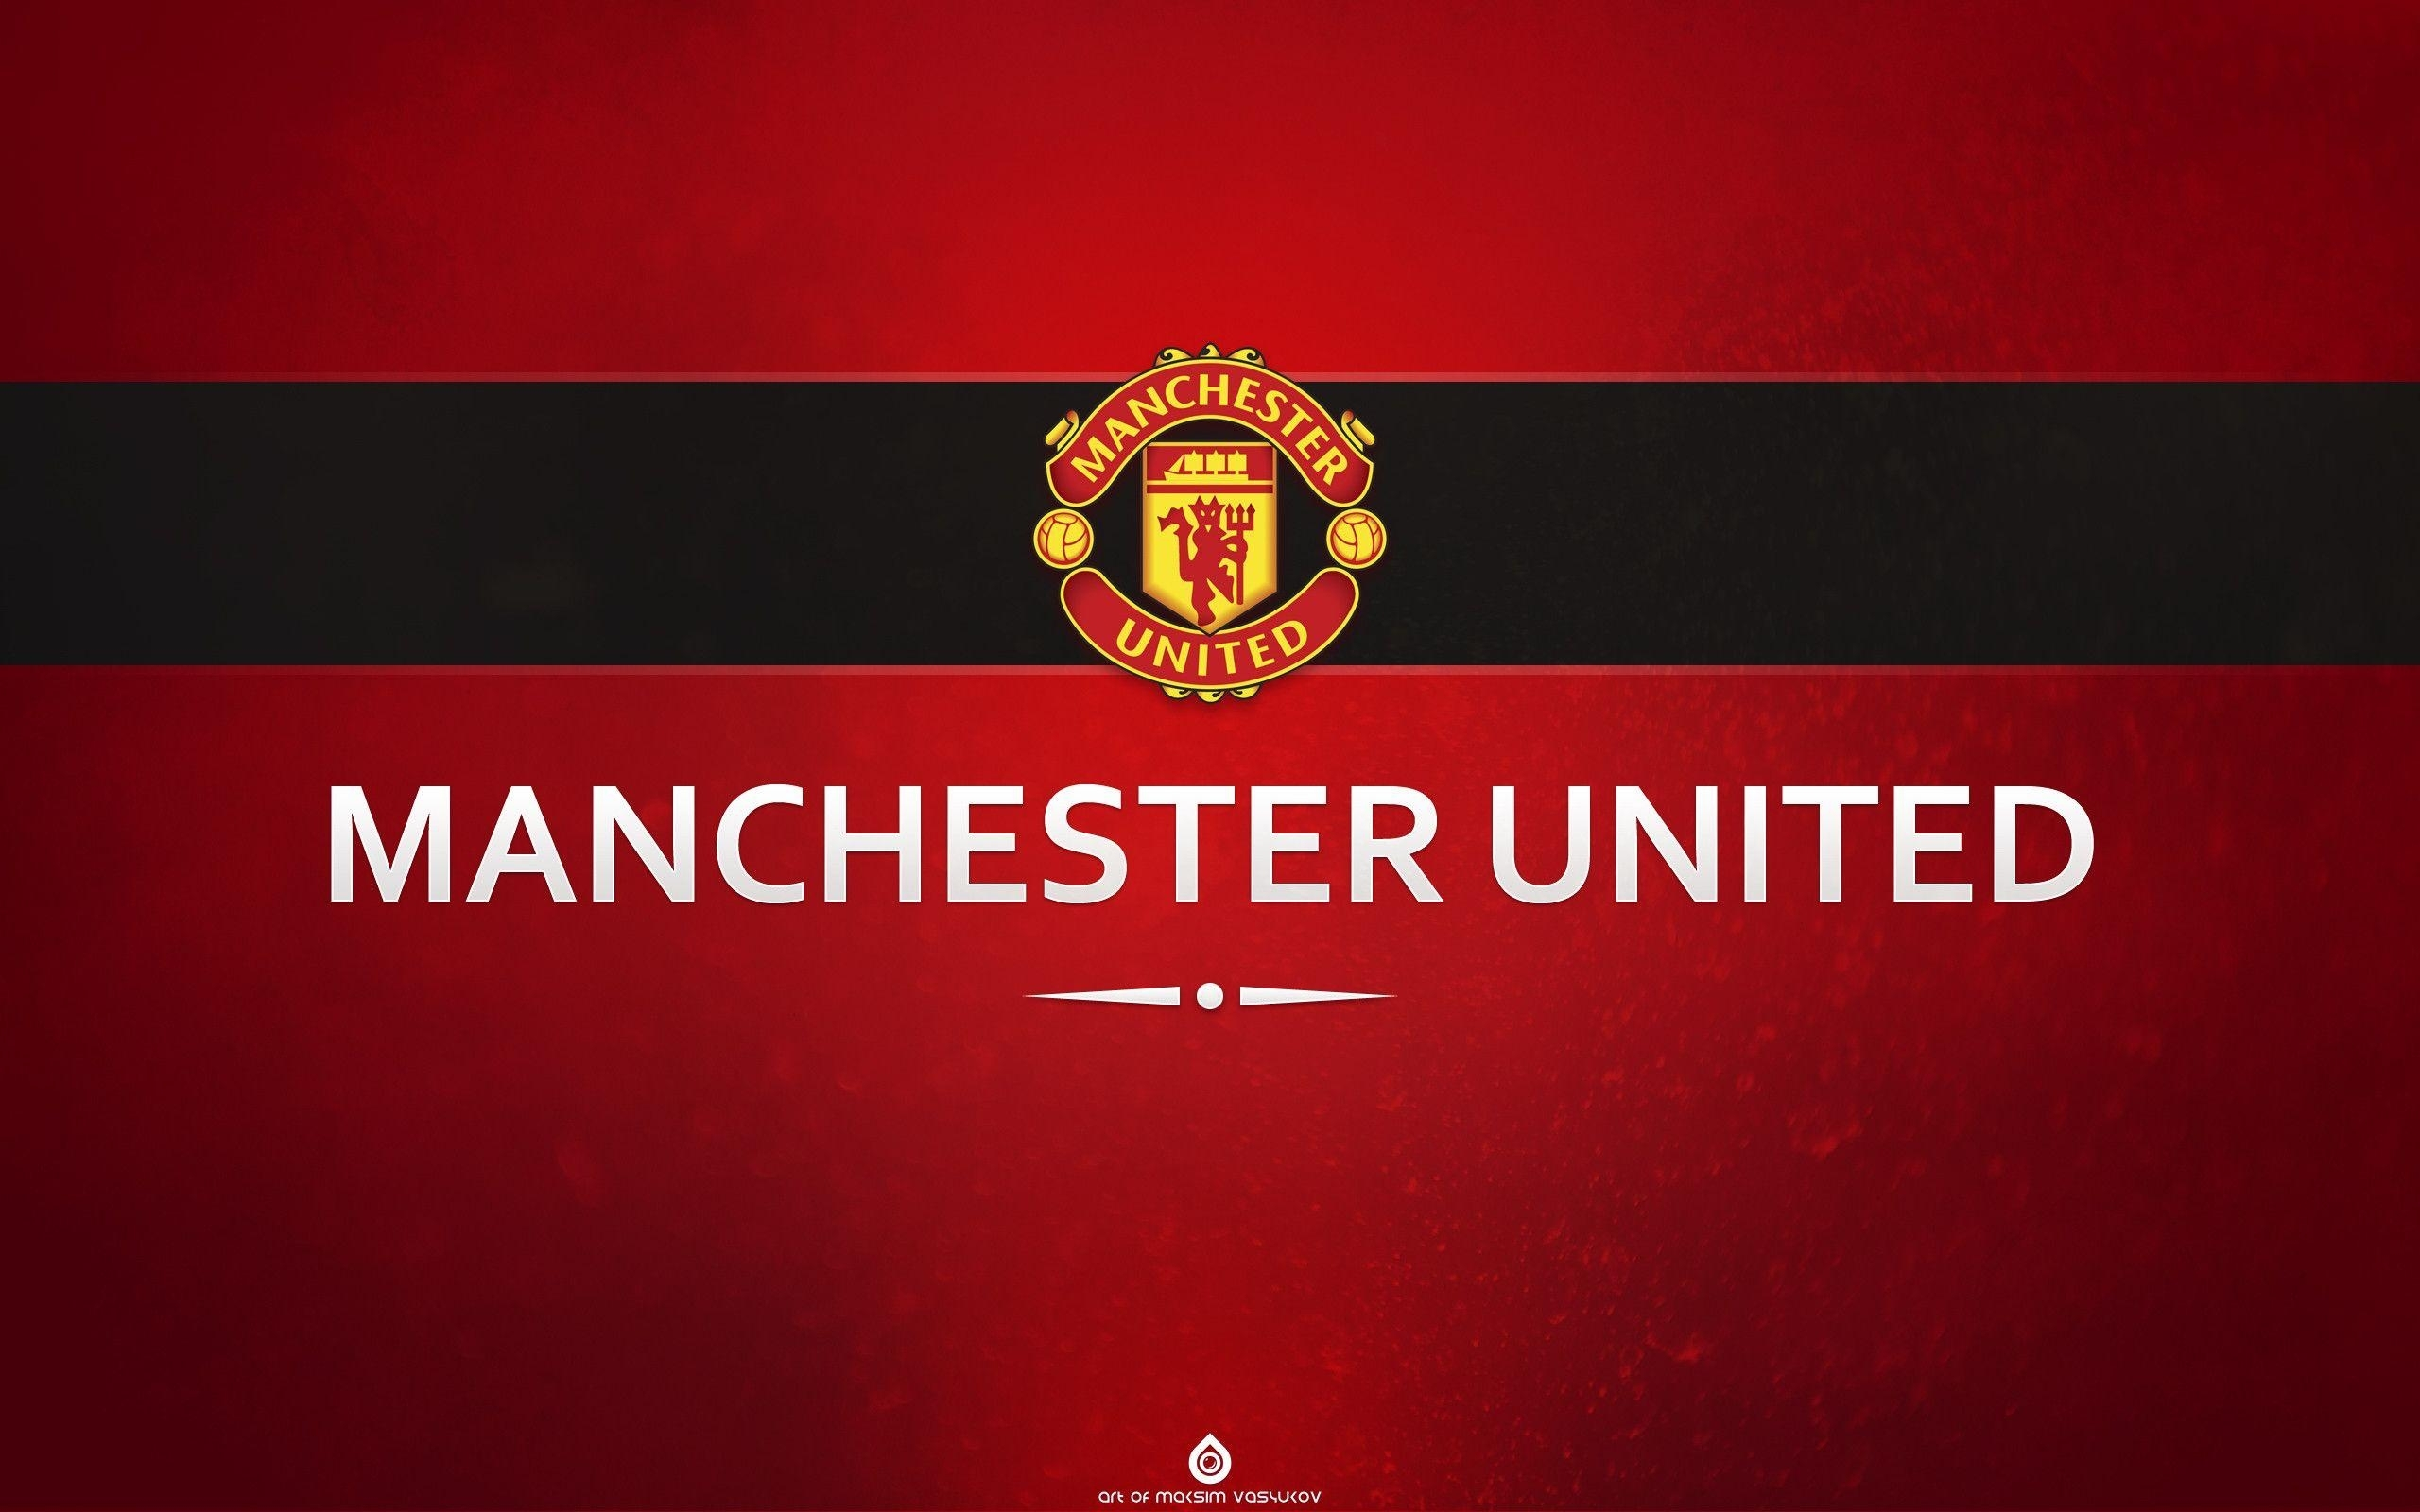 manchester united wallpapers hd - wallpaper cave